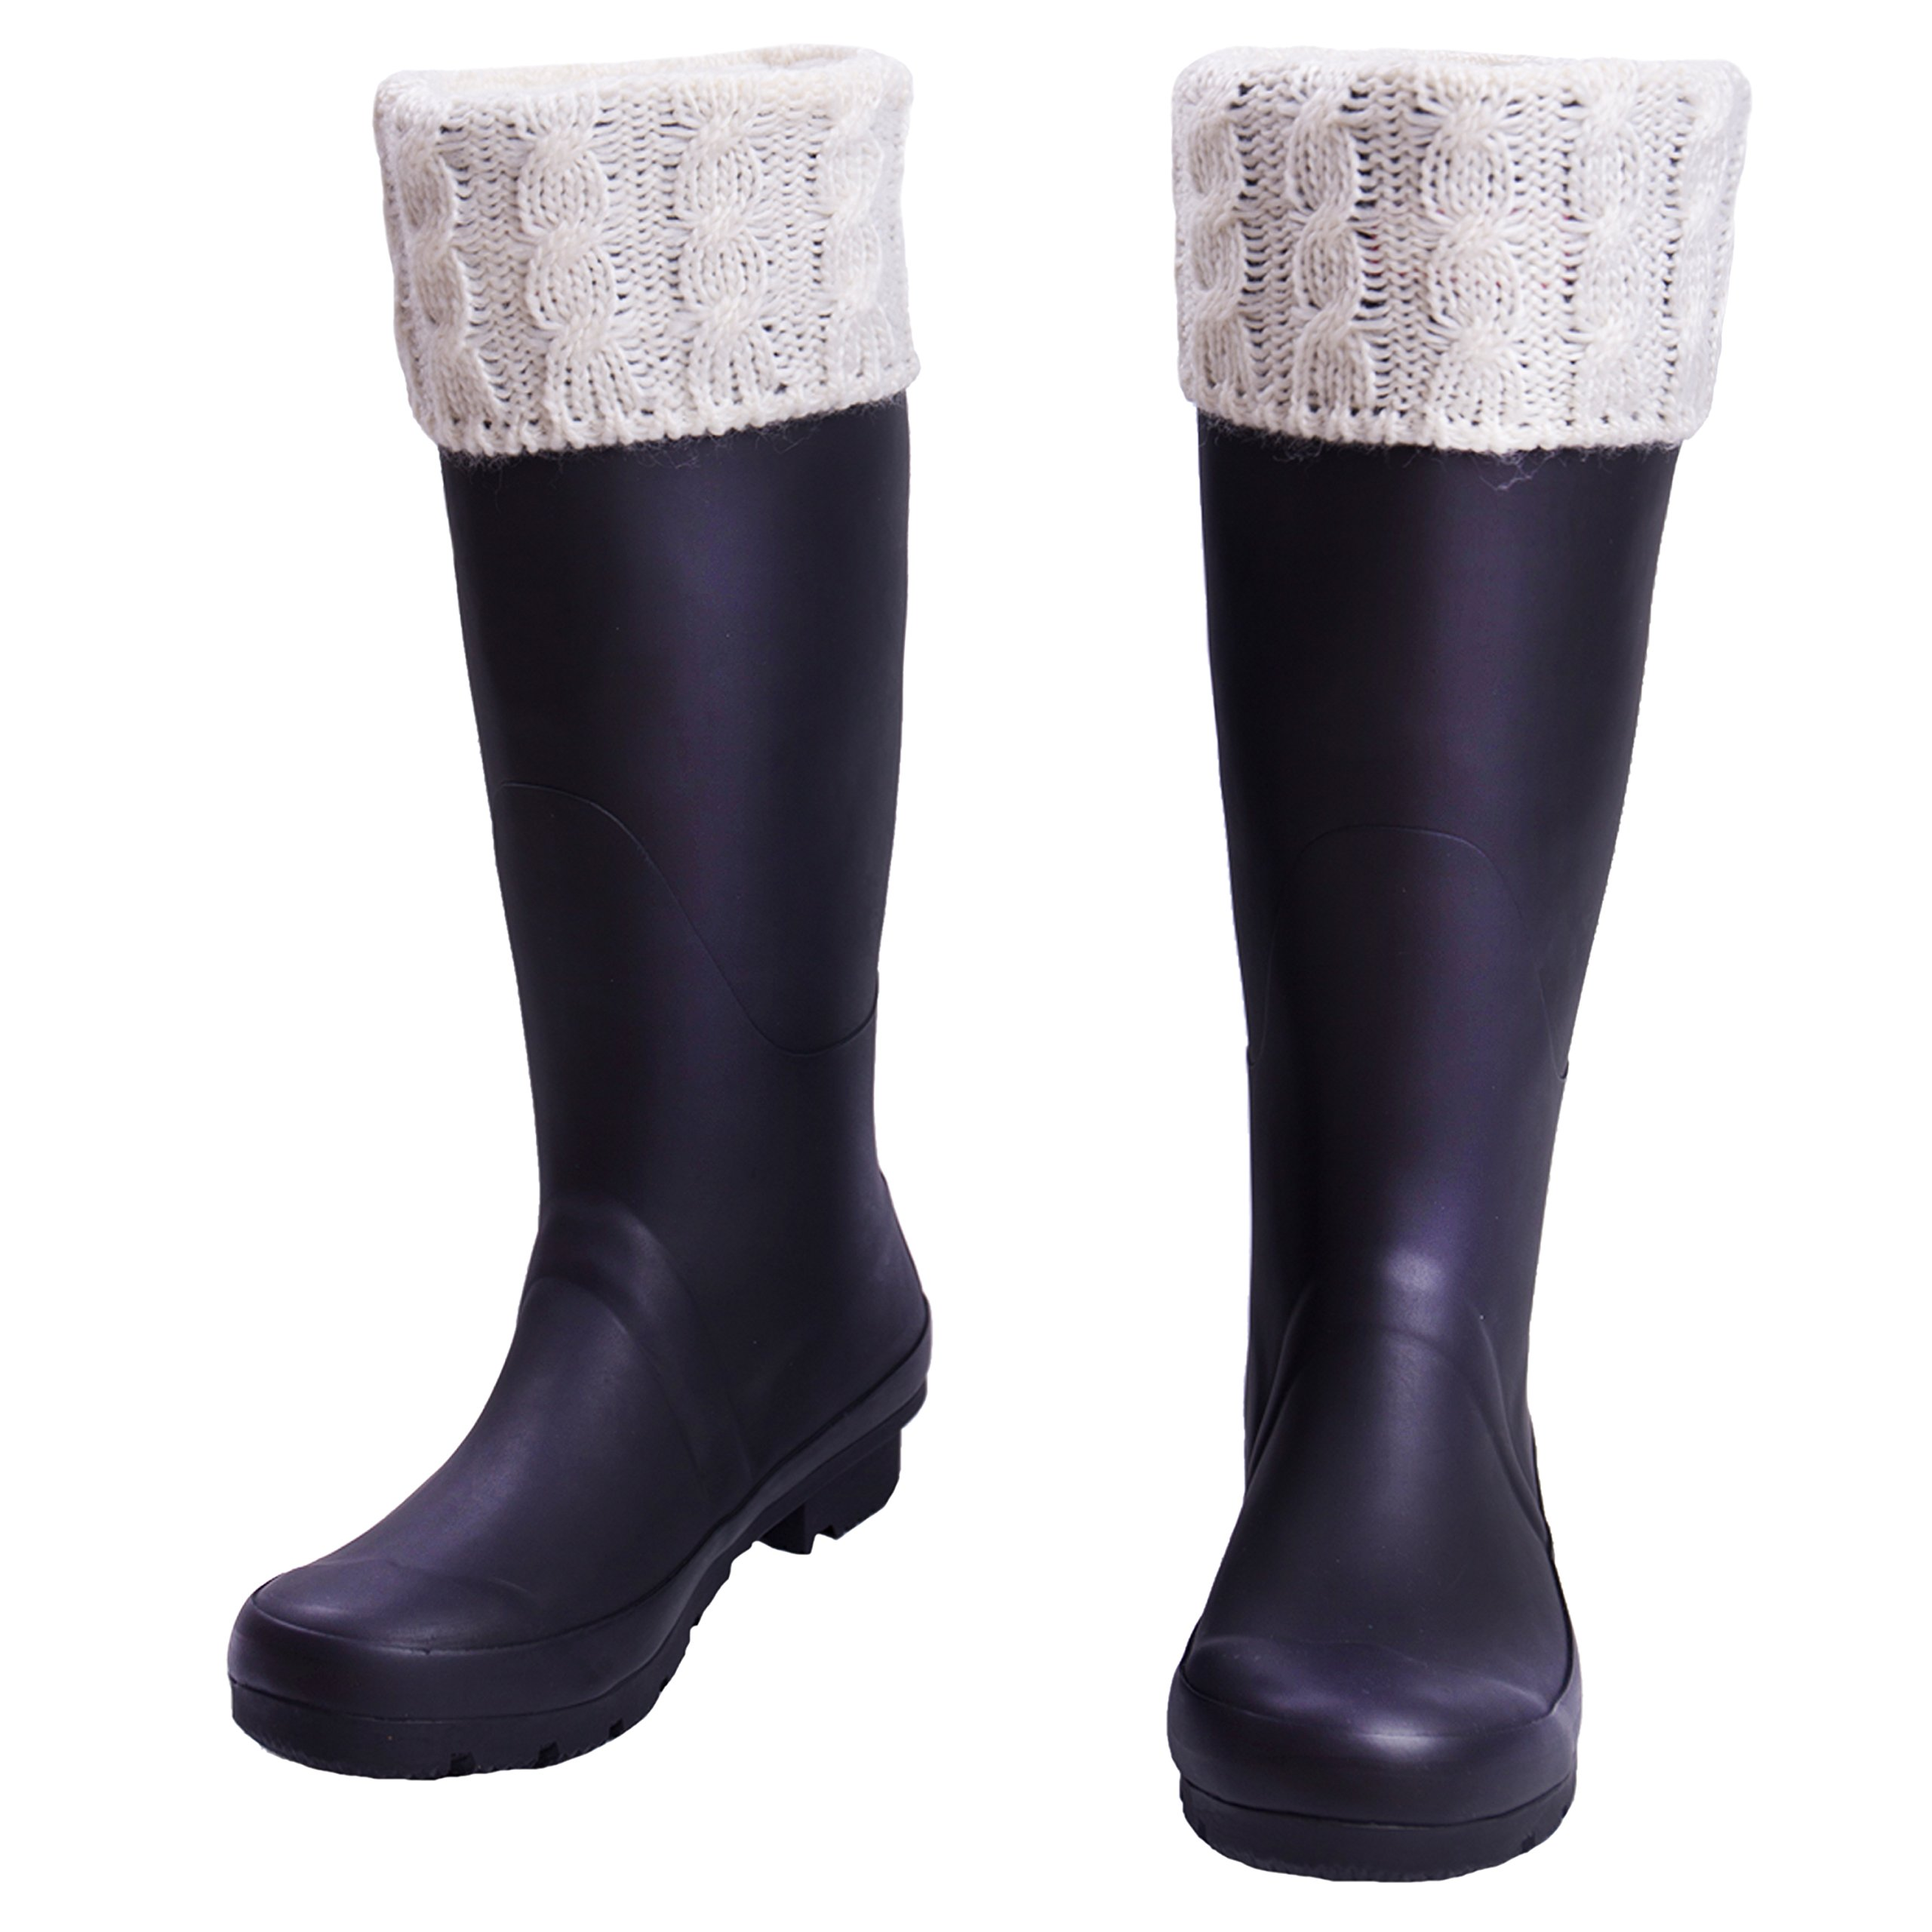 TPLB Women White Knitted Boot Thermal, Insulated & Plush Fleece Socks(L)